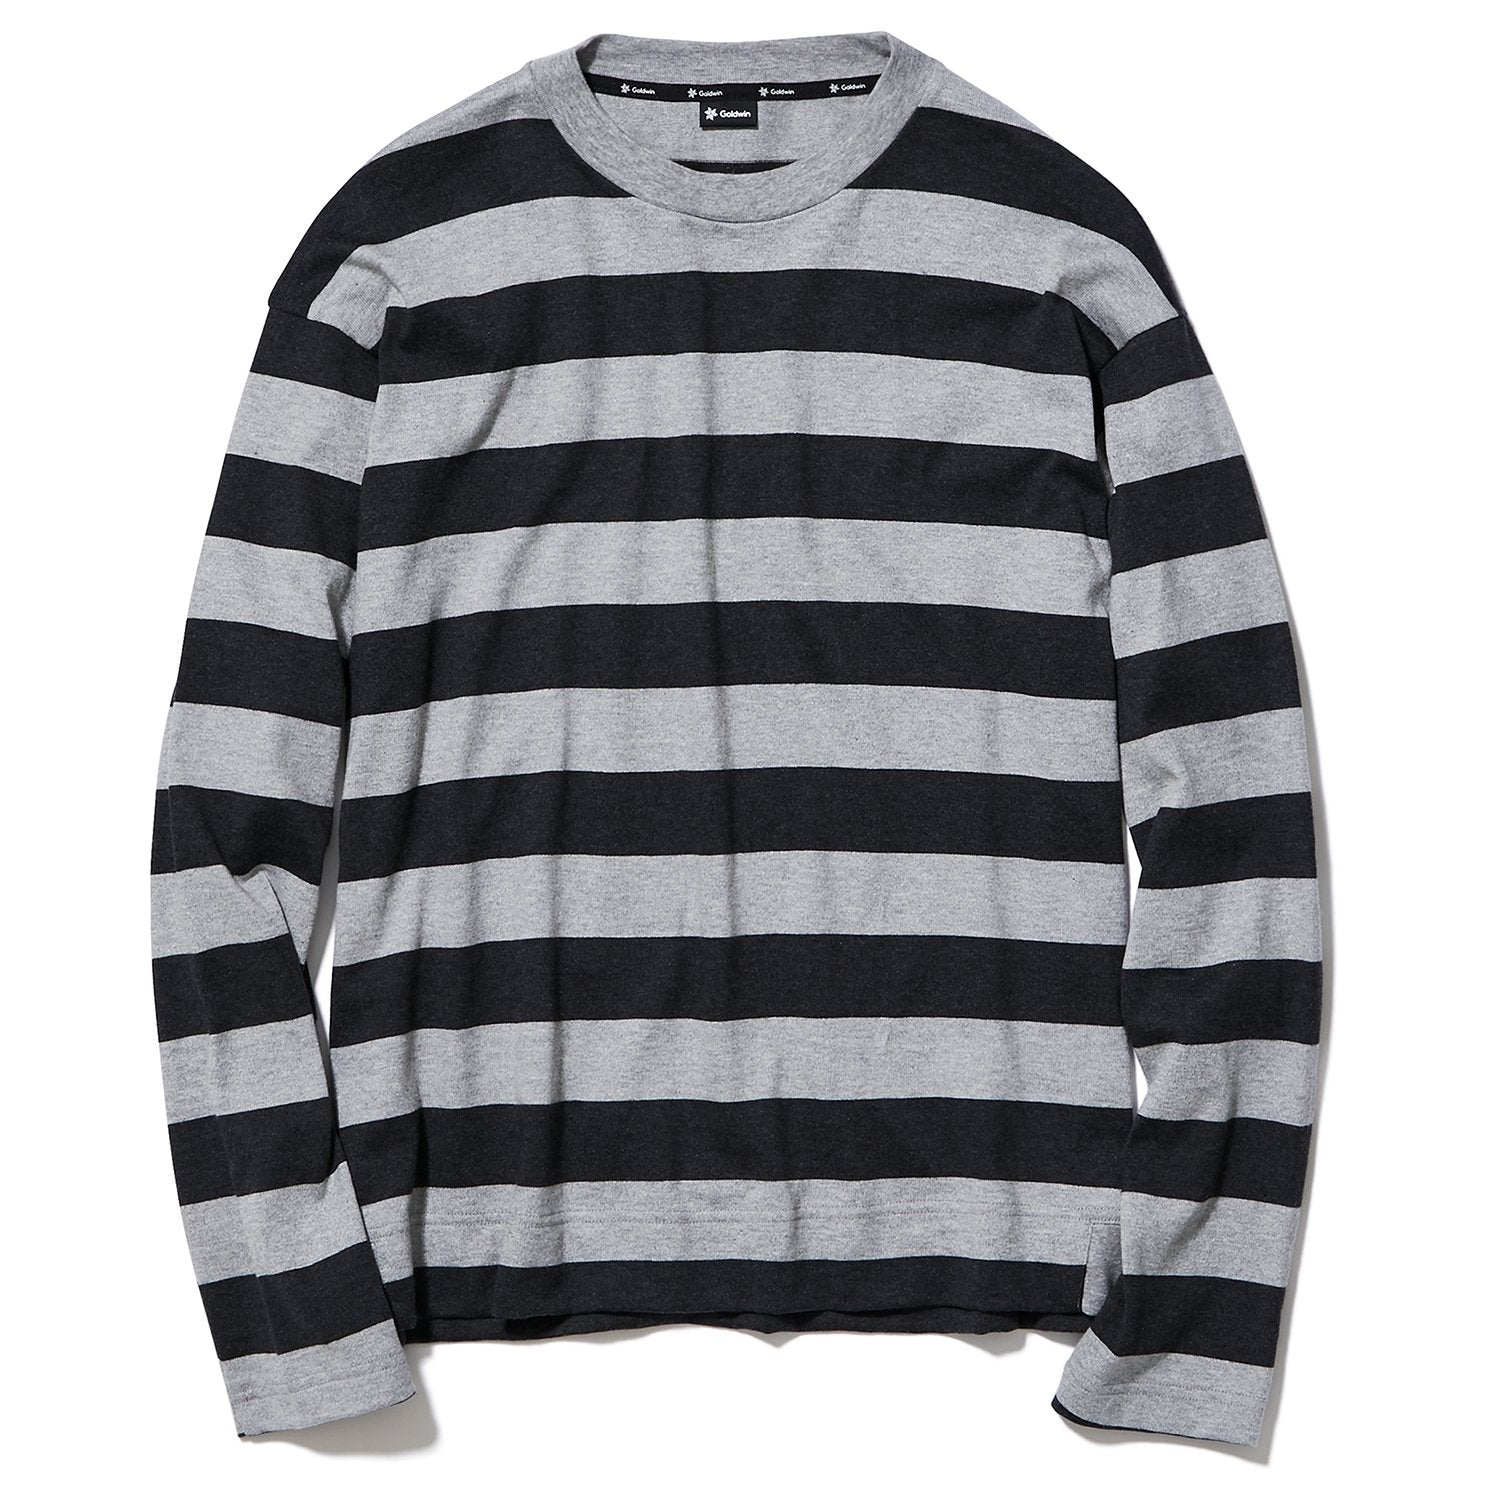 BORDER JERSEY LONG SLEEVES HEATHER GRAY